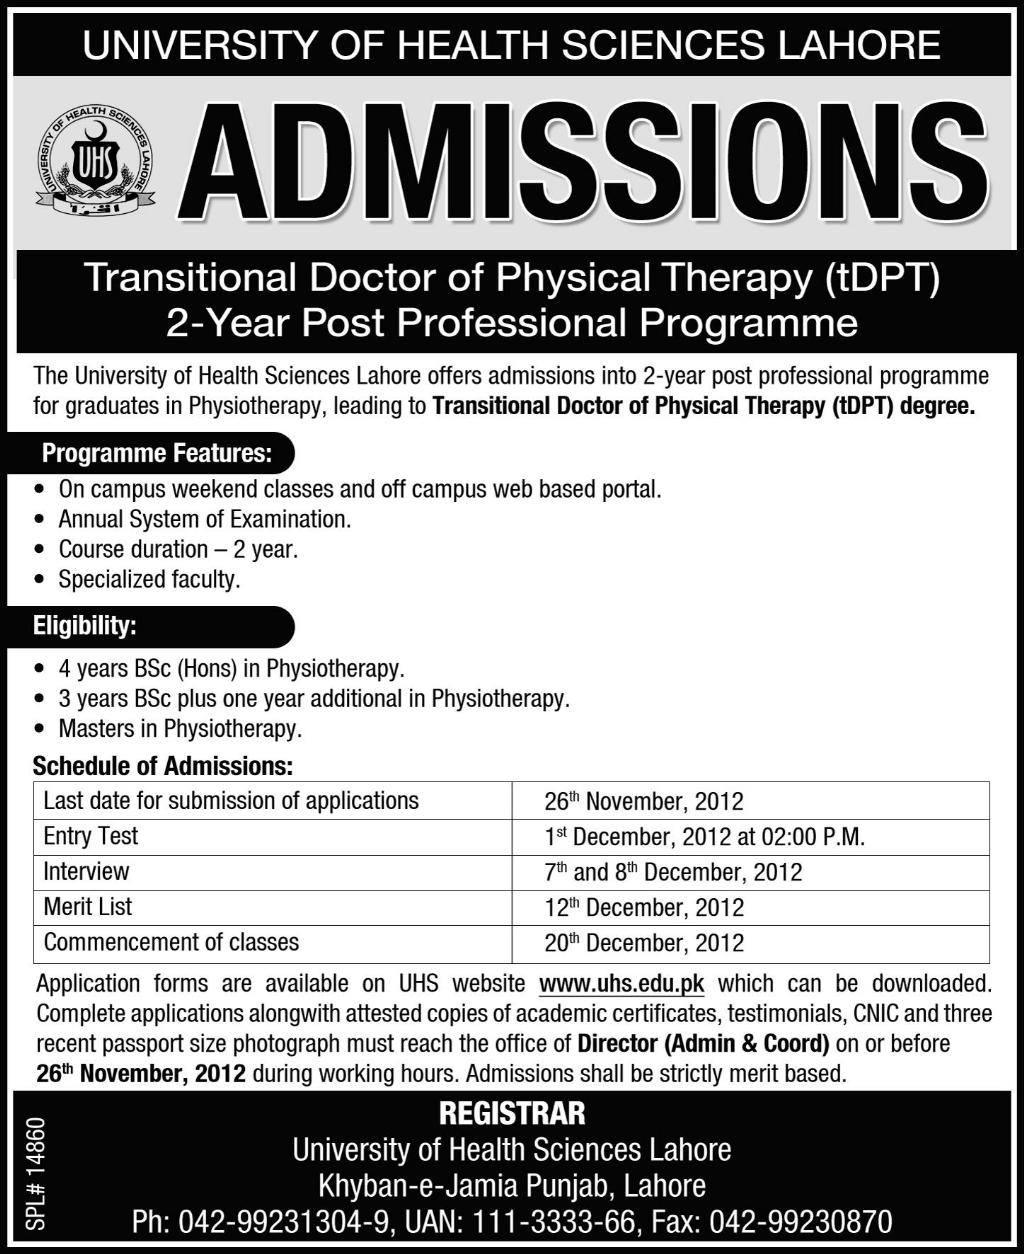 University Of Health Sciences Lahore Admissions Dow University Of health Sciences Offer MS/M.Phil Admissions 2015